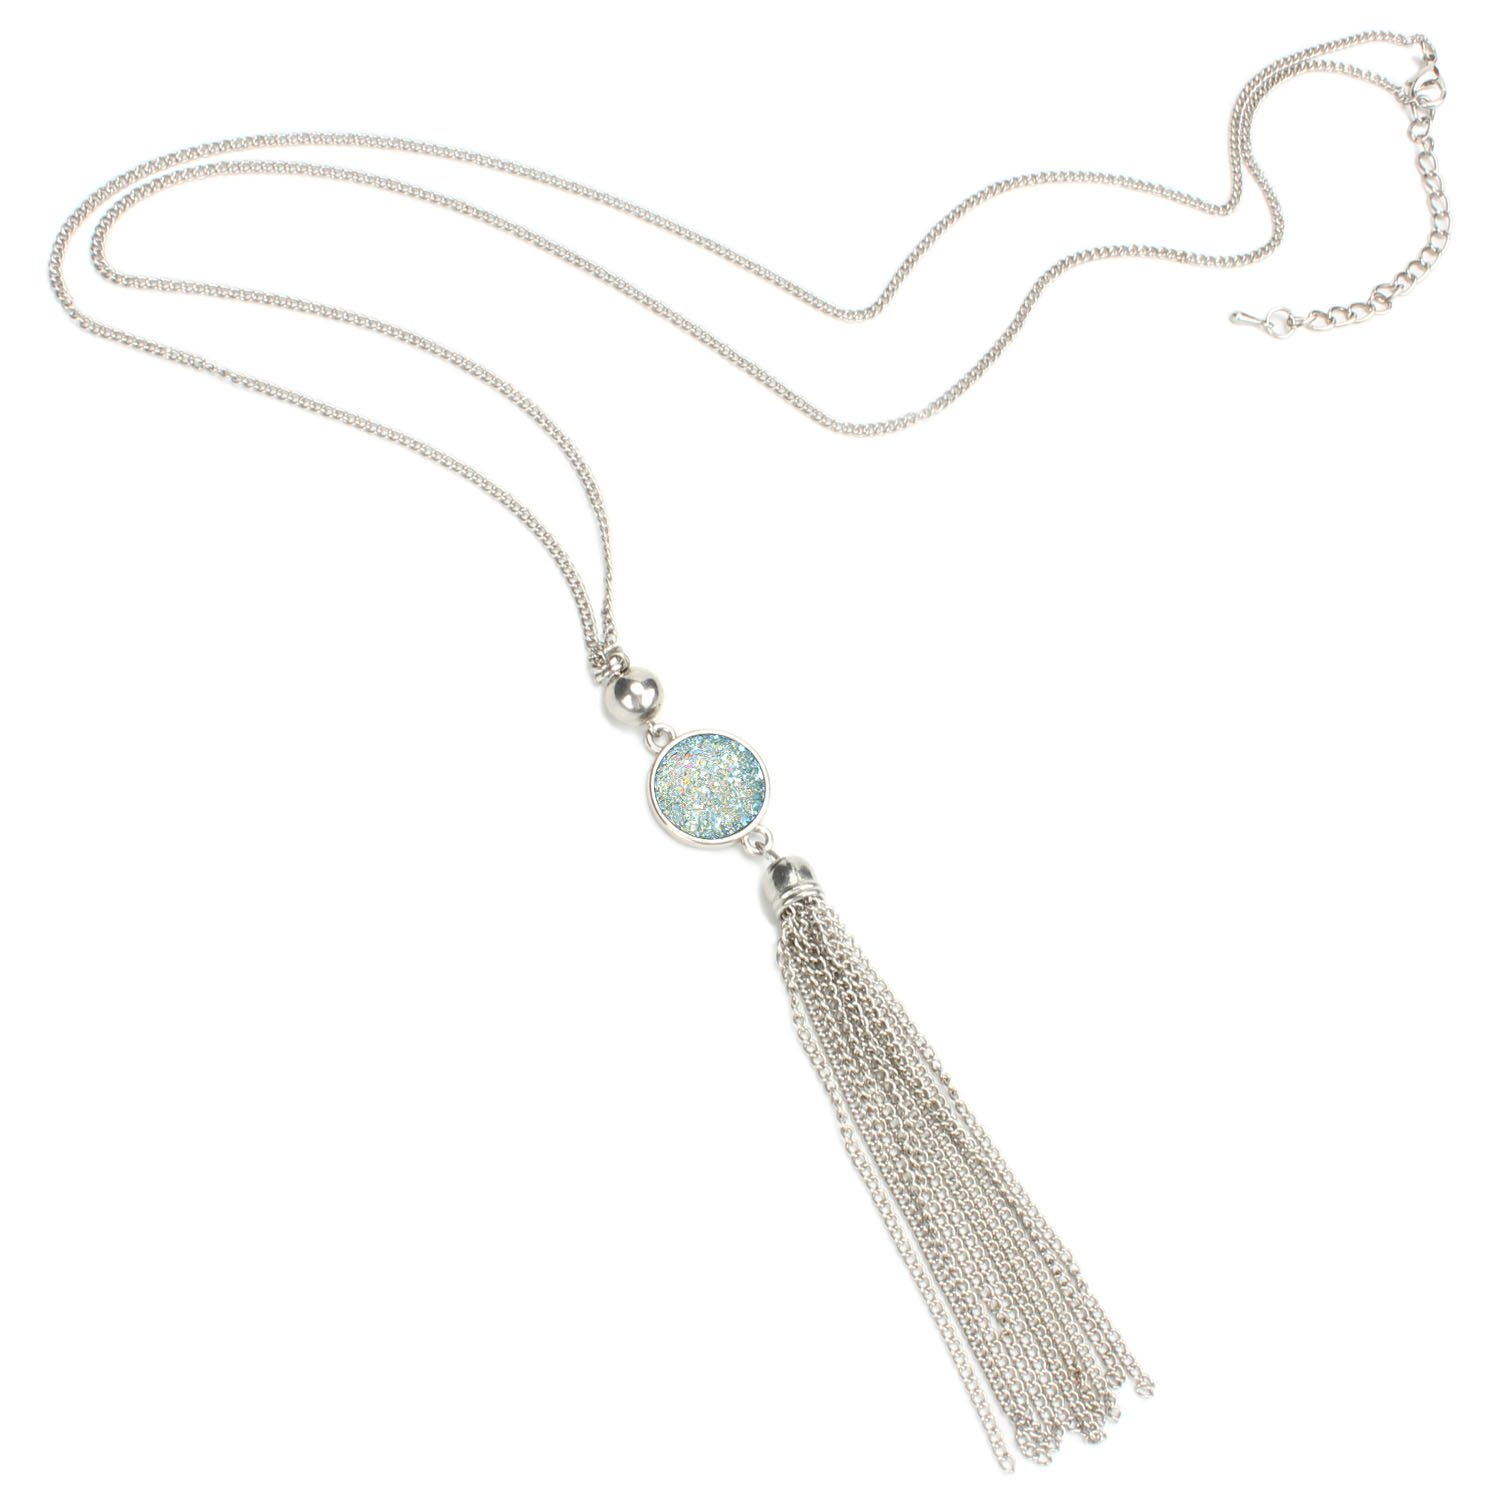 BOUTIQUELOVIN Y-Shaped Long Chain Tassel Necklace With Super Sparkly Faux Druzy Stone, Stainless Steel